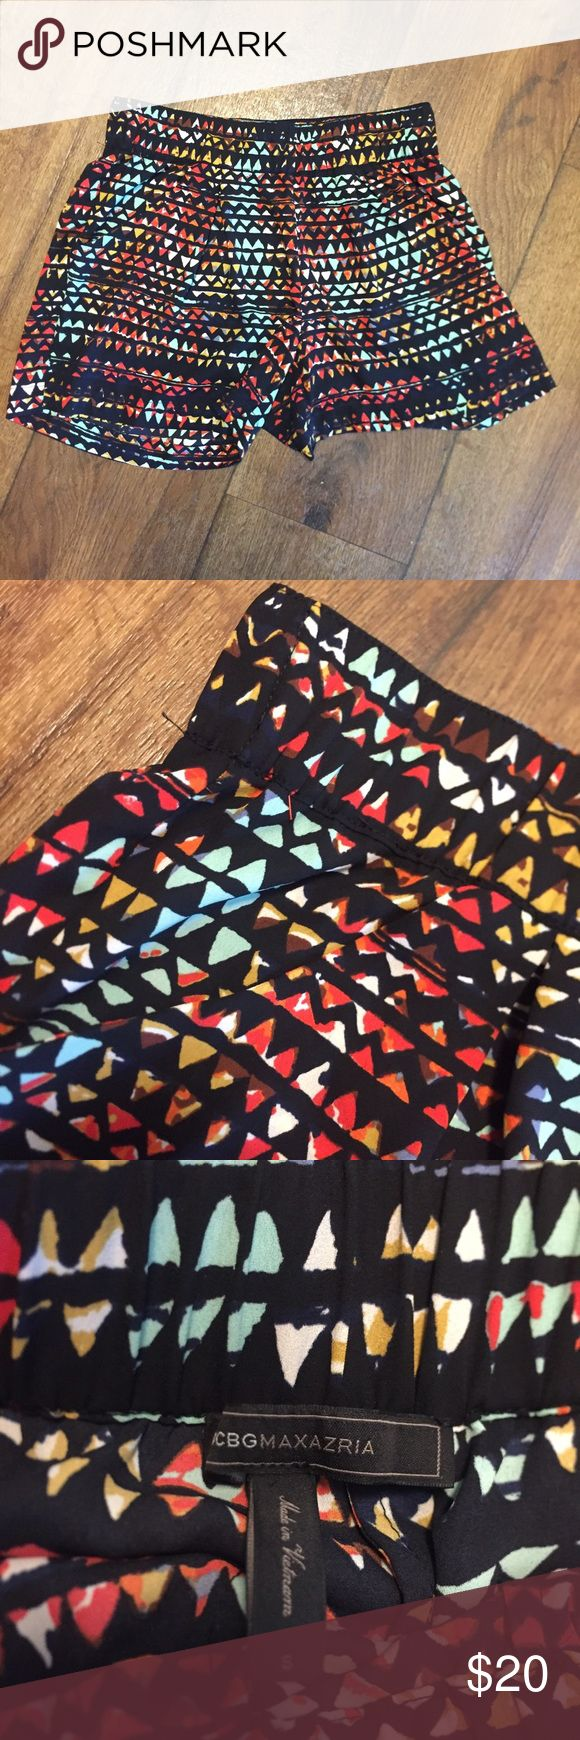 Blue and Red Tribal Shorts Cute Tribal shorts from the BCBGmaxazria collection. A really fun way to spice up an outfit. Made up of a really silky, breathable material. BCBGMaxAzria Shorts